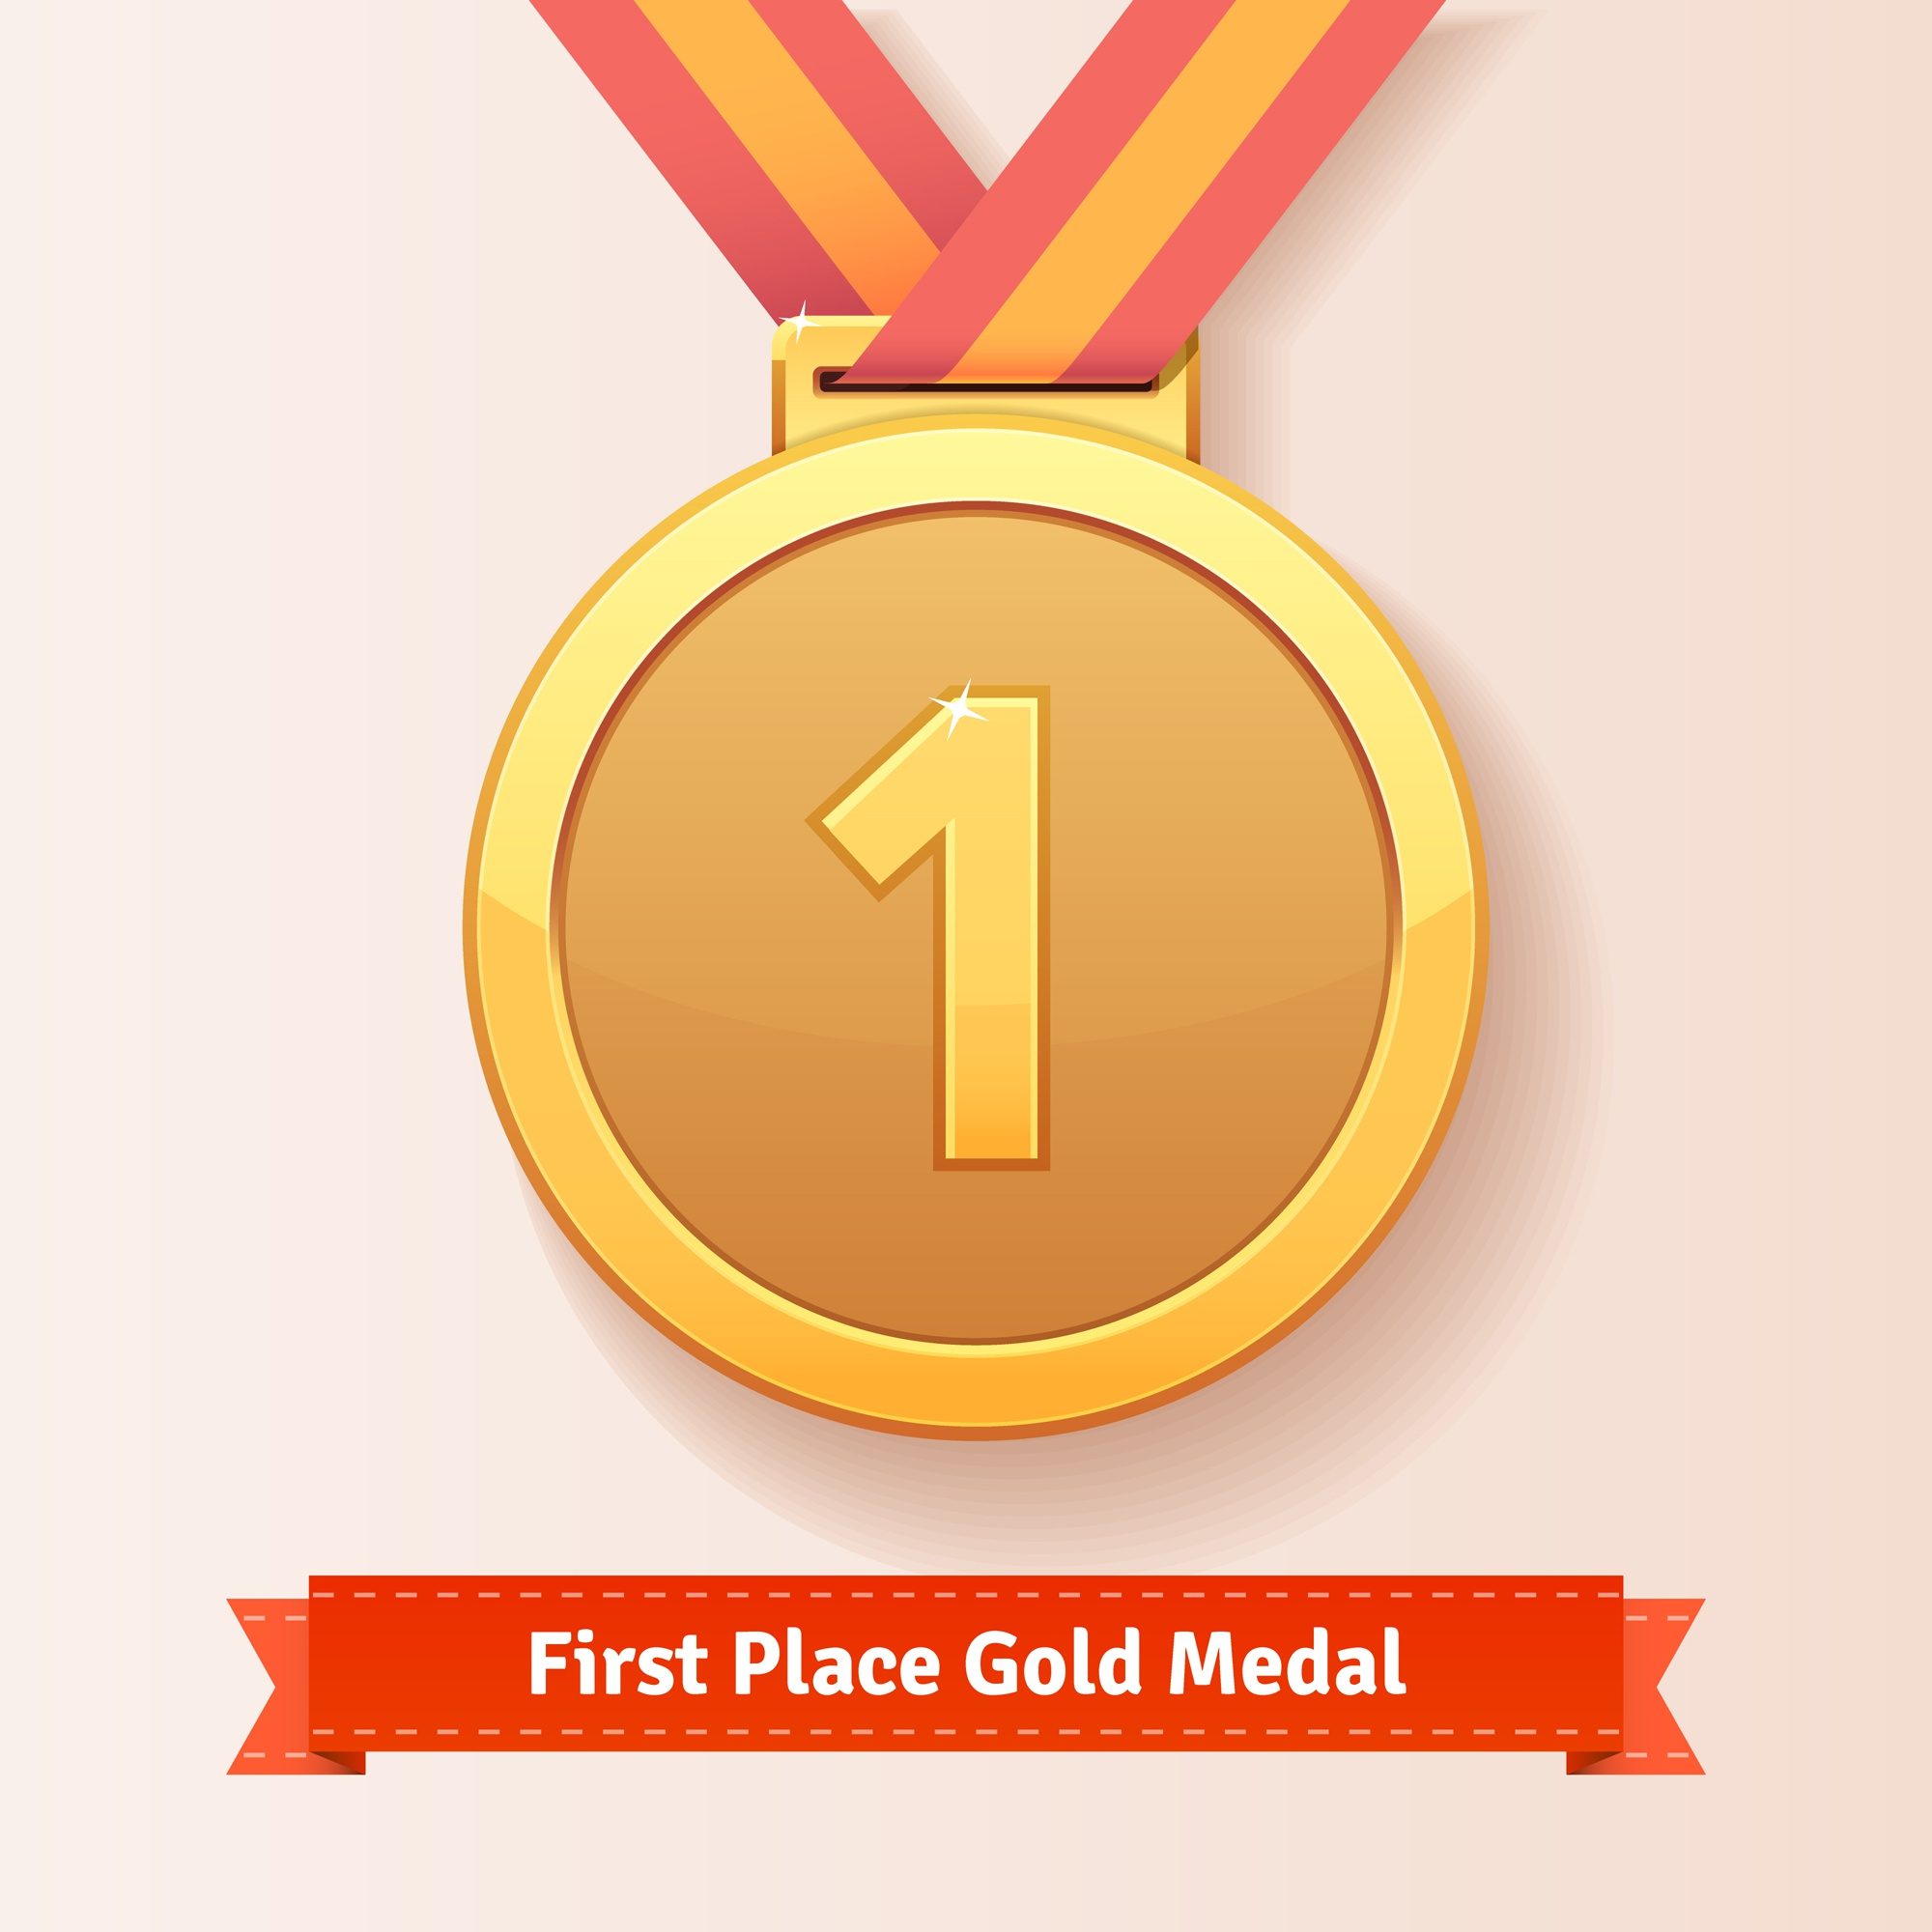 First place award gold medal with red ribbon